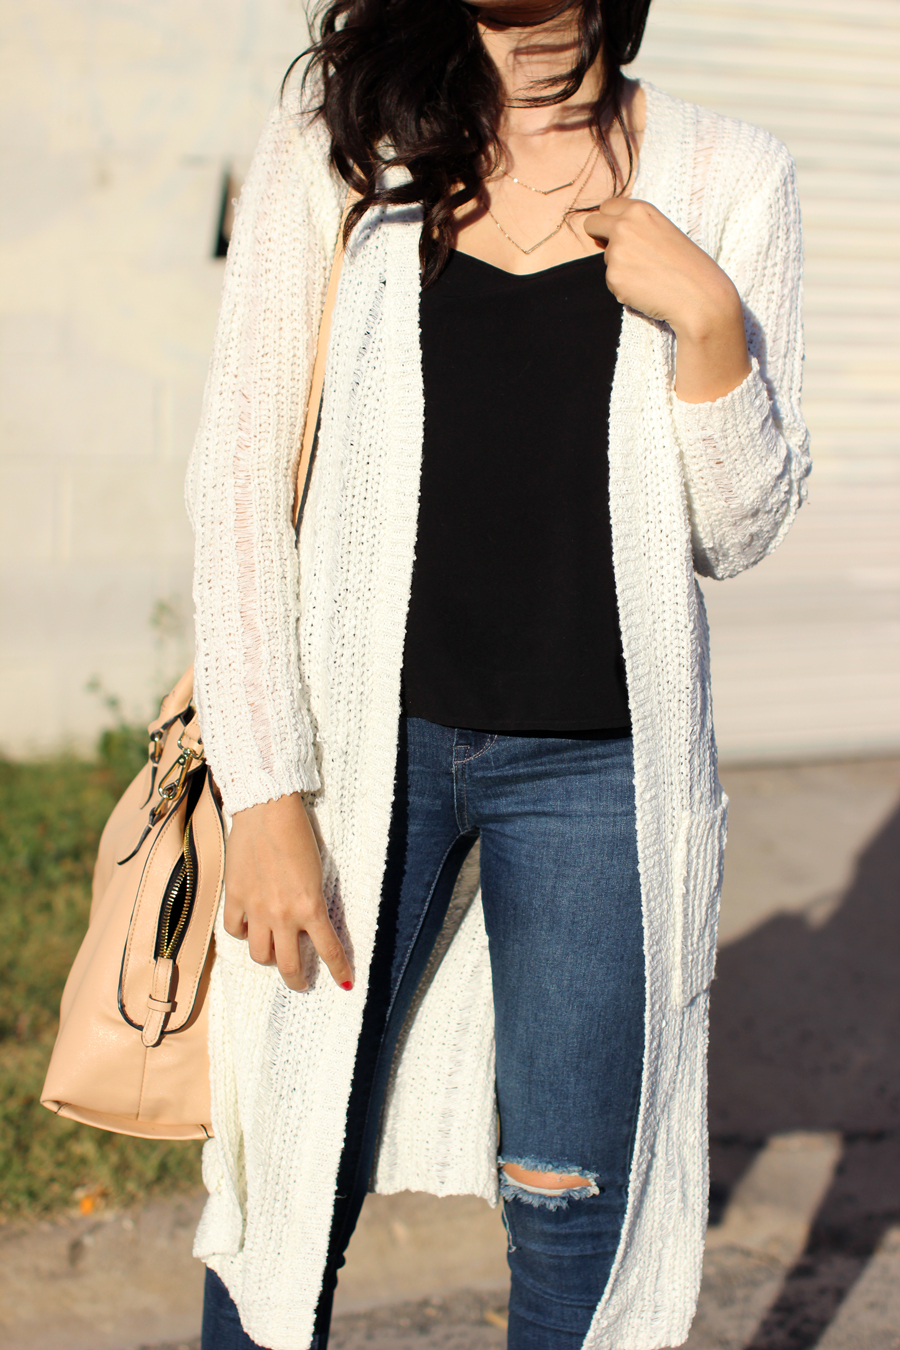 FTT-SHOP-PINK-BLUSH-RIPPED-JEANS-DUSTER-CARDIGAN-CASUAL